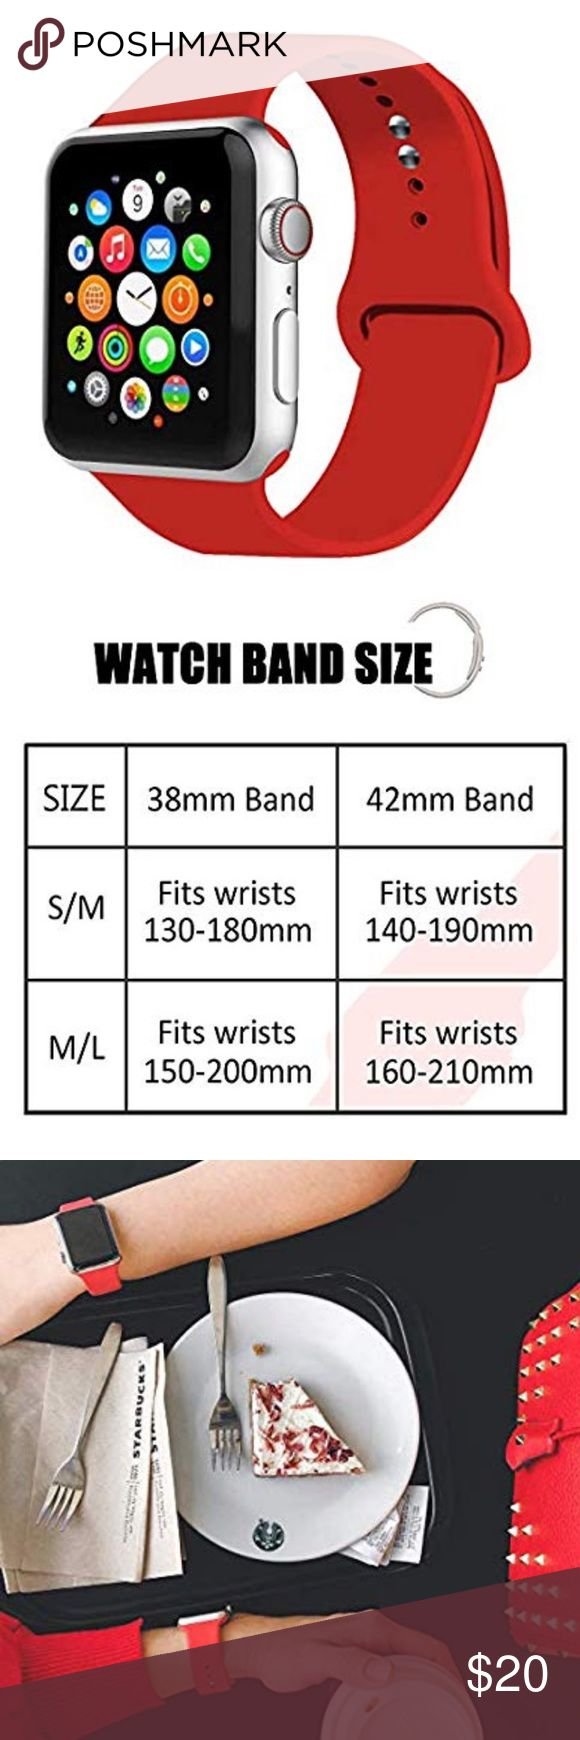 Silicone Sport Band for Apple Watch Red 38mm Apple watch